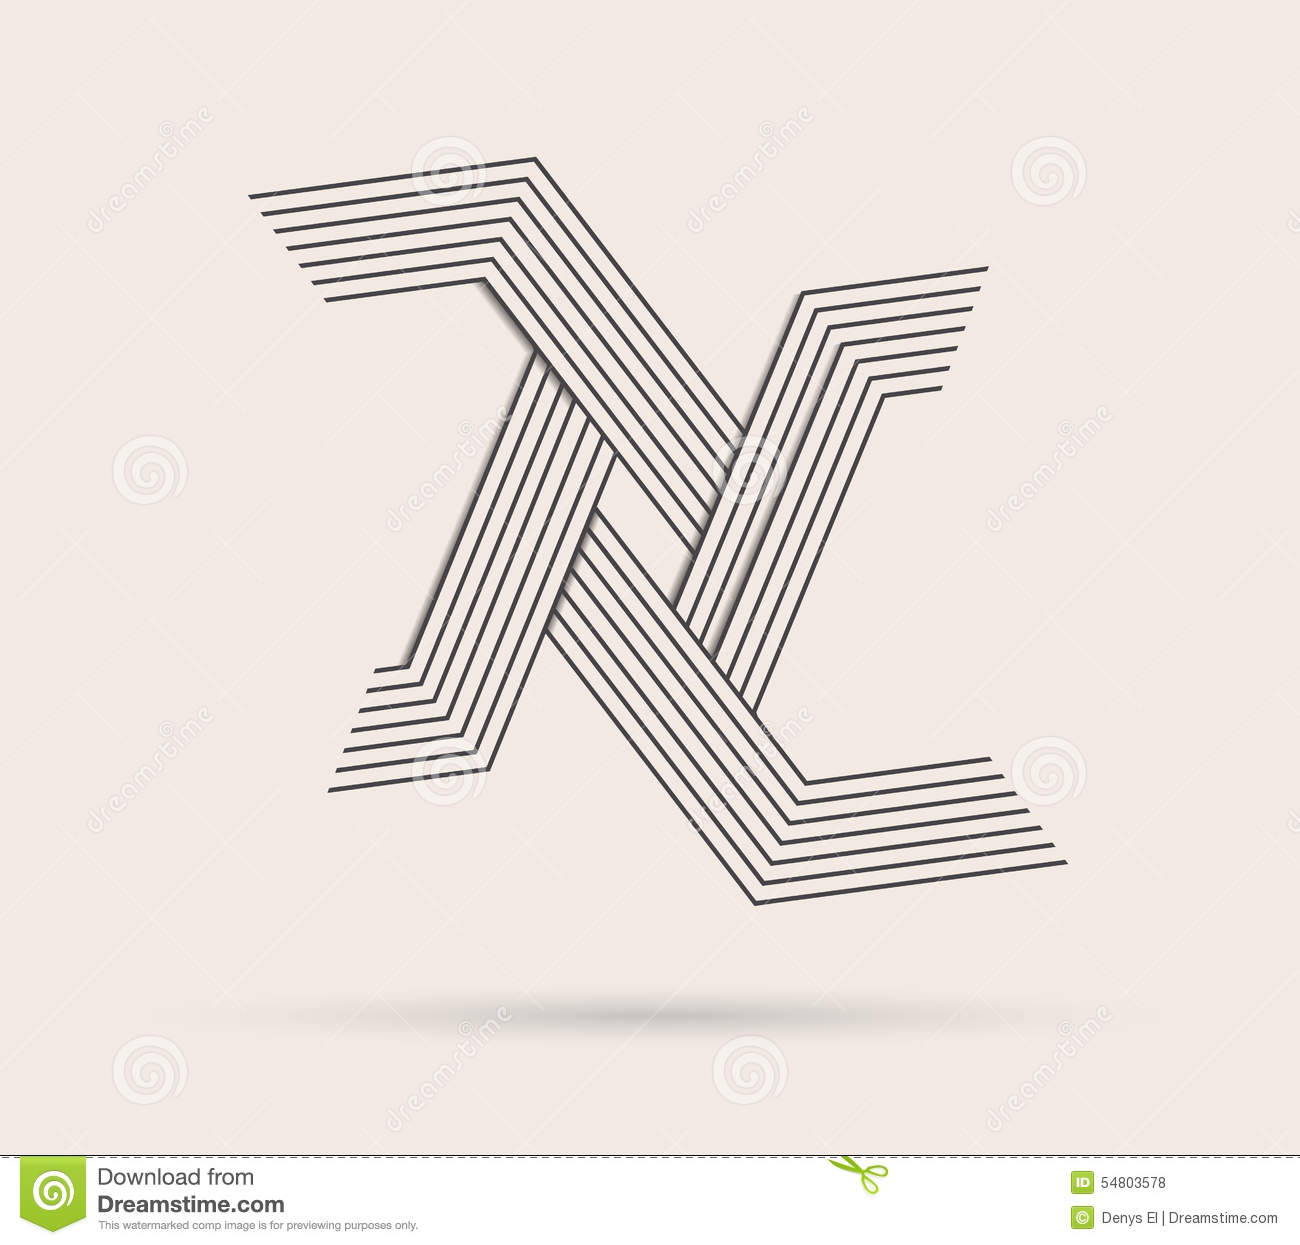 abstract logo made with lines  stock illustration